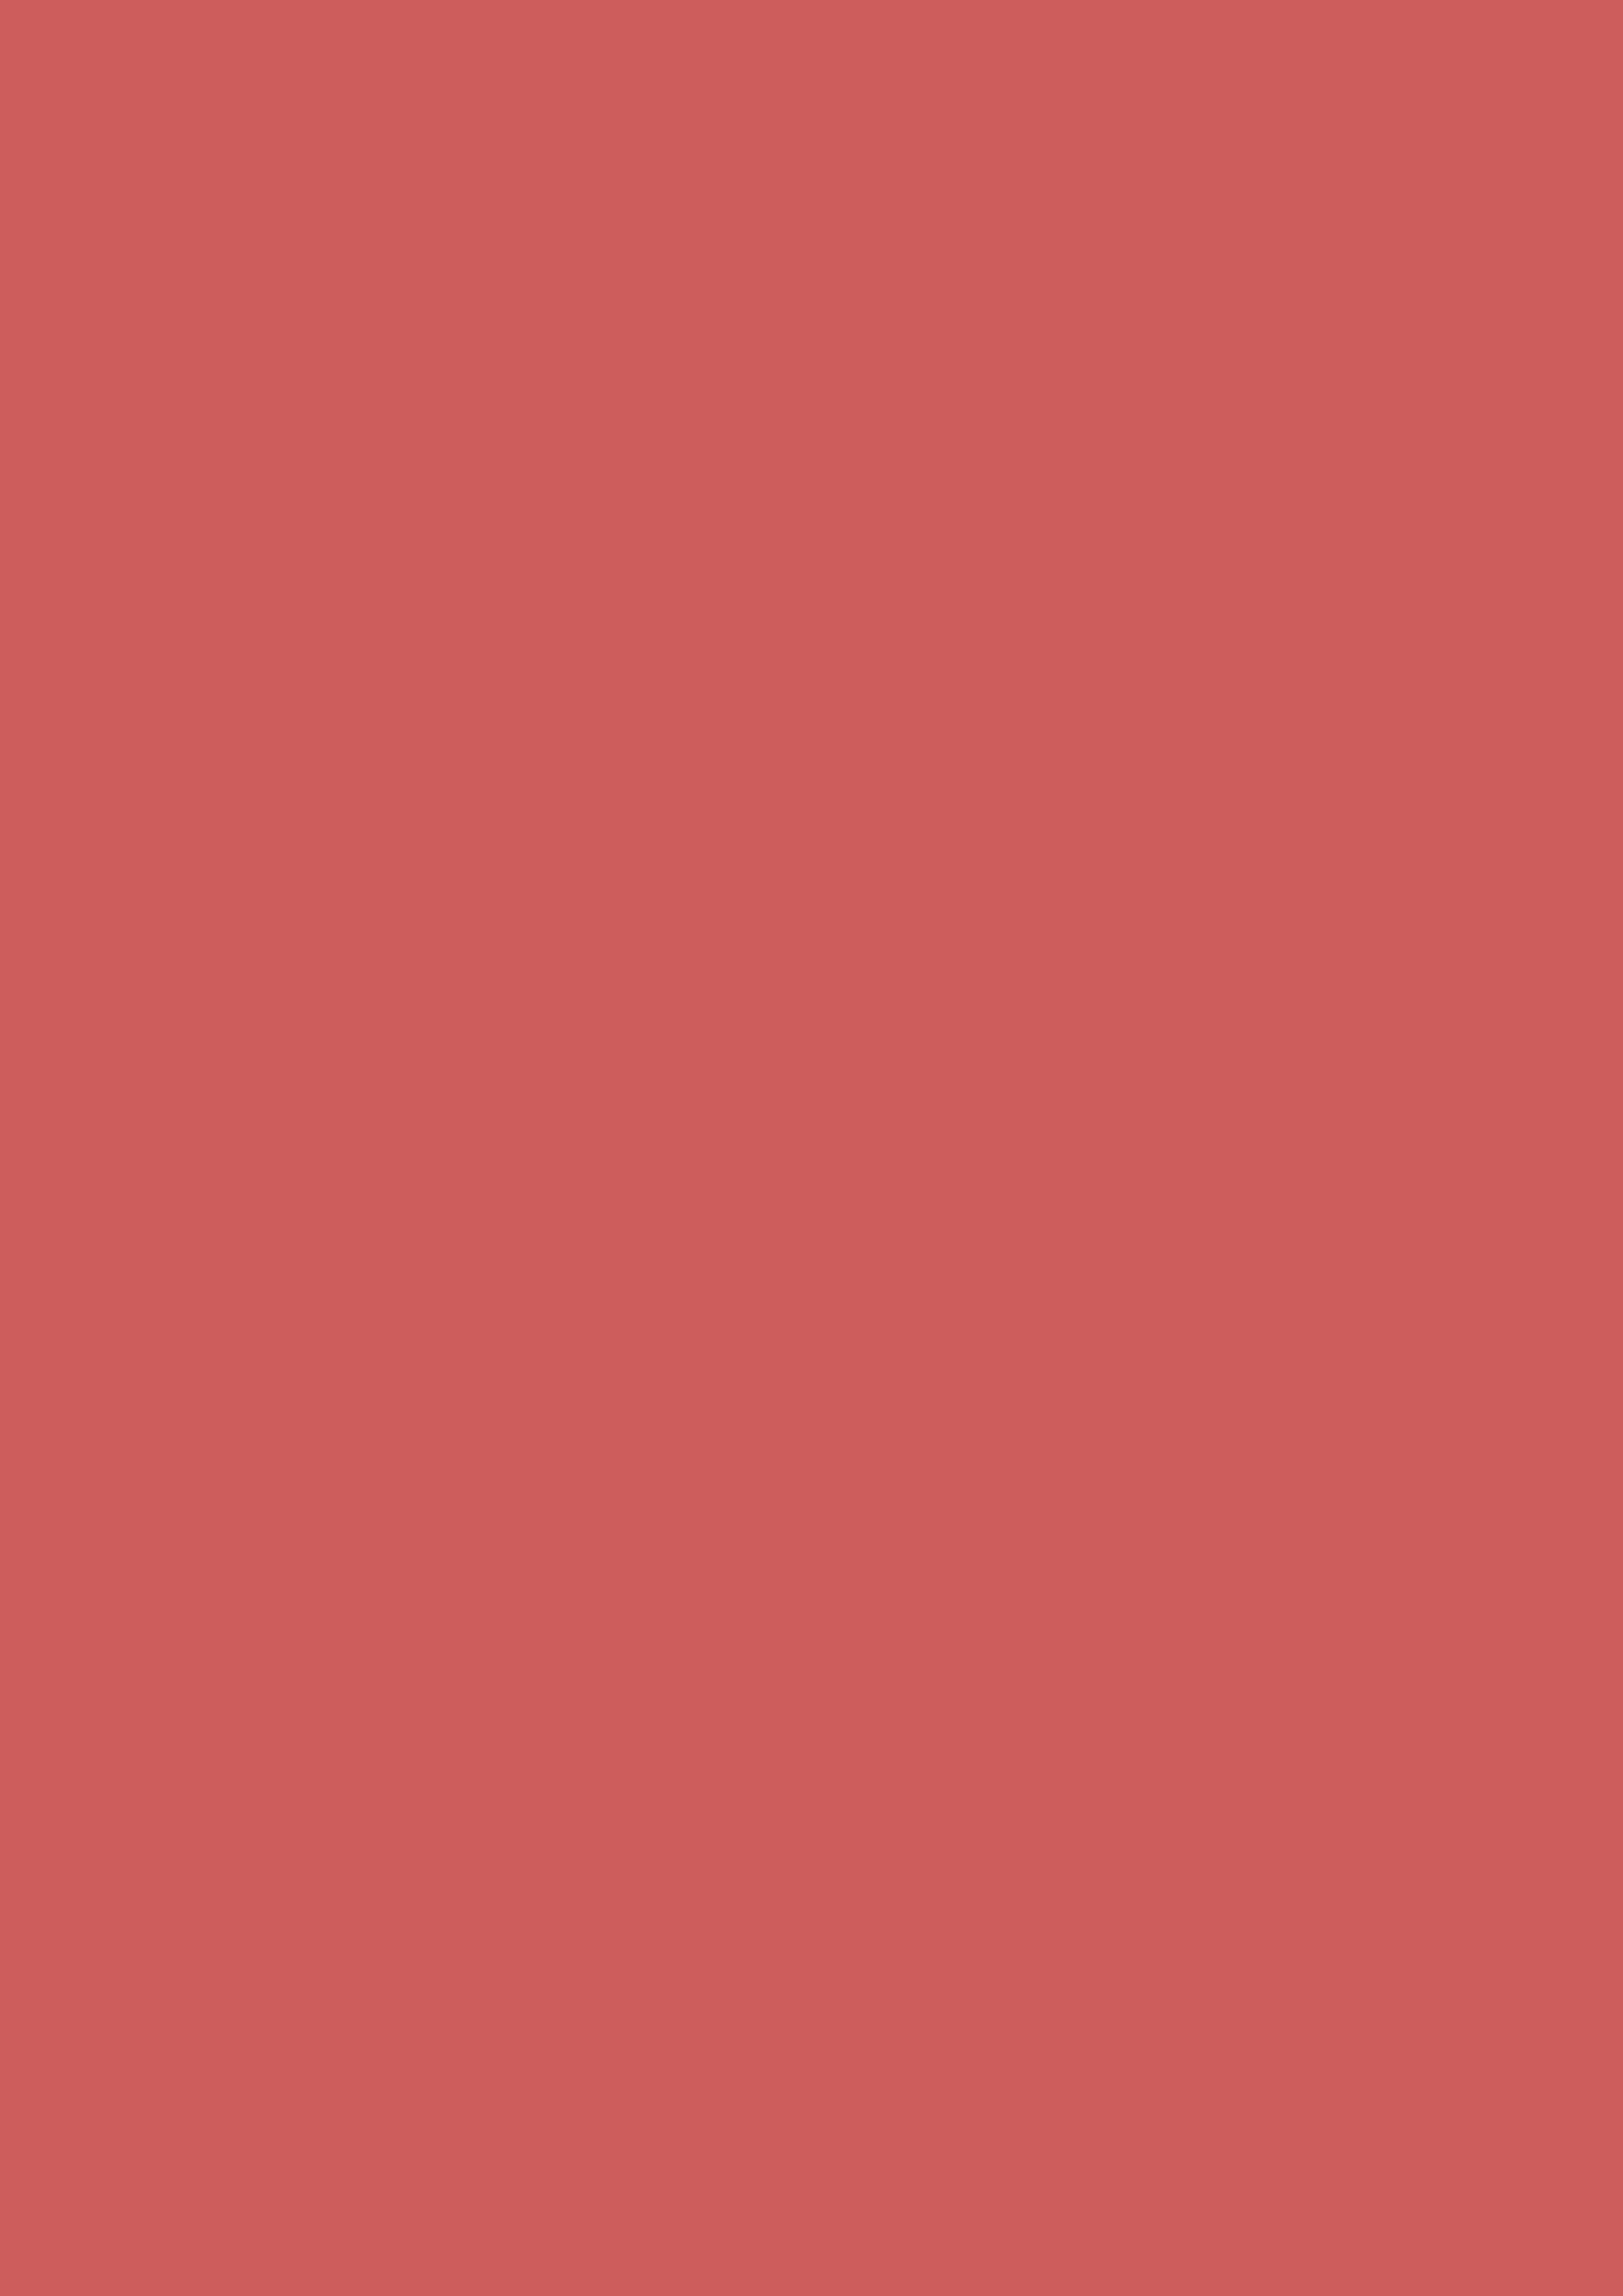 2480x3508 Indian Red Solid Color Background